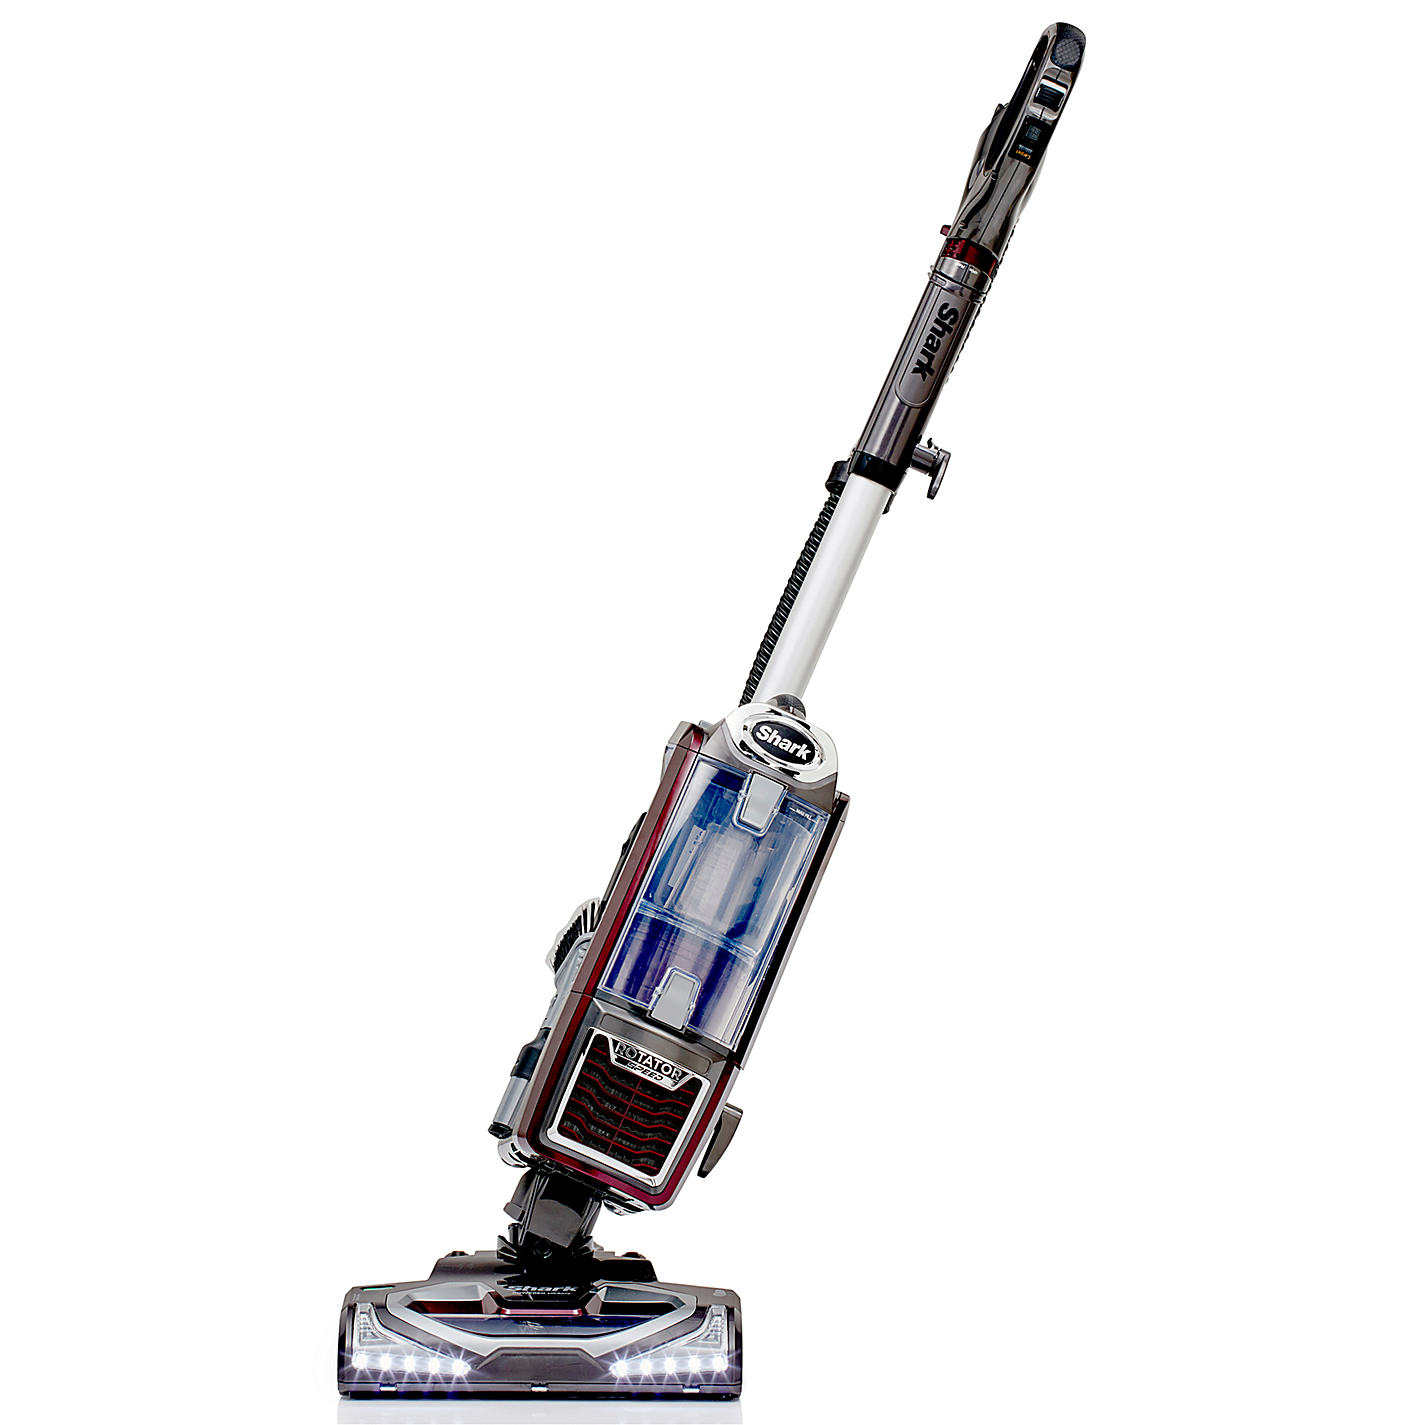 buy shark nv680ukt powered liftaway true pet vacuum cleaner online at